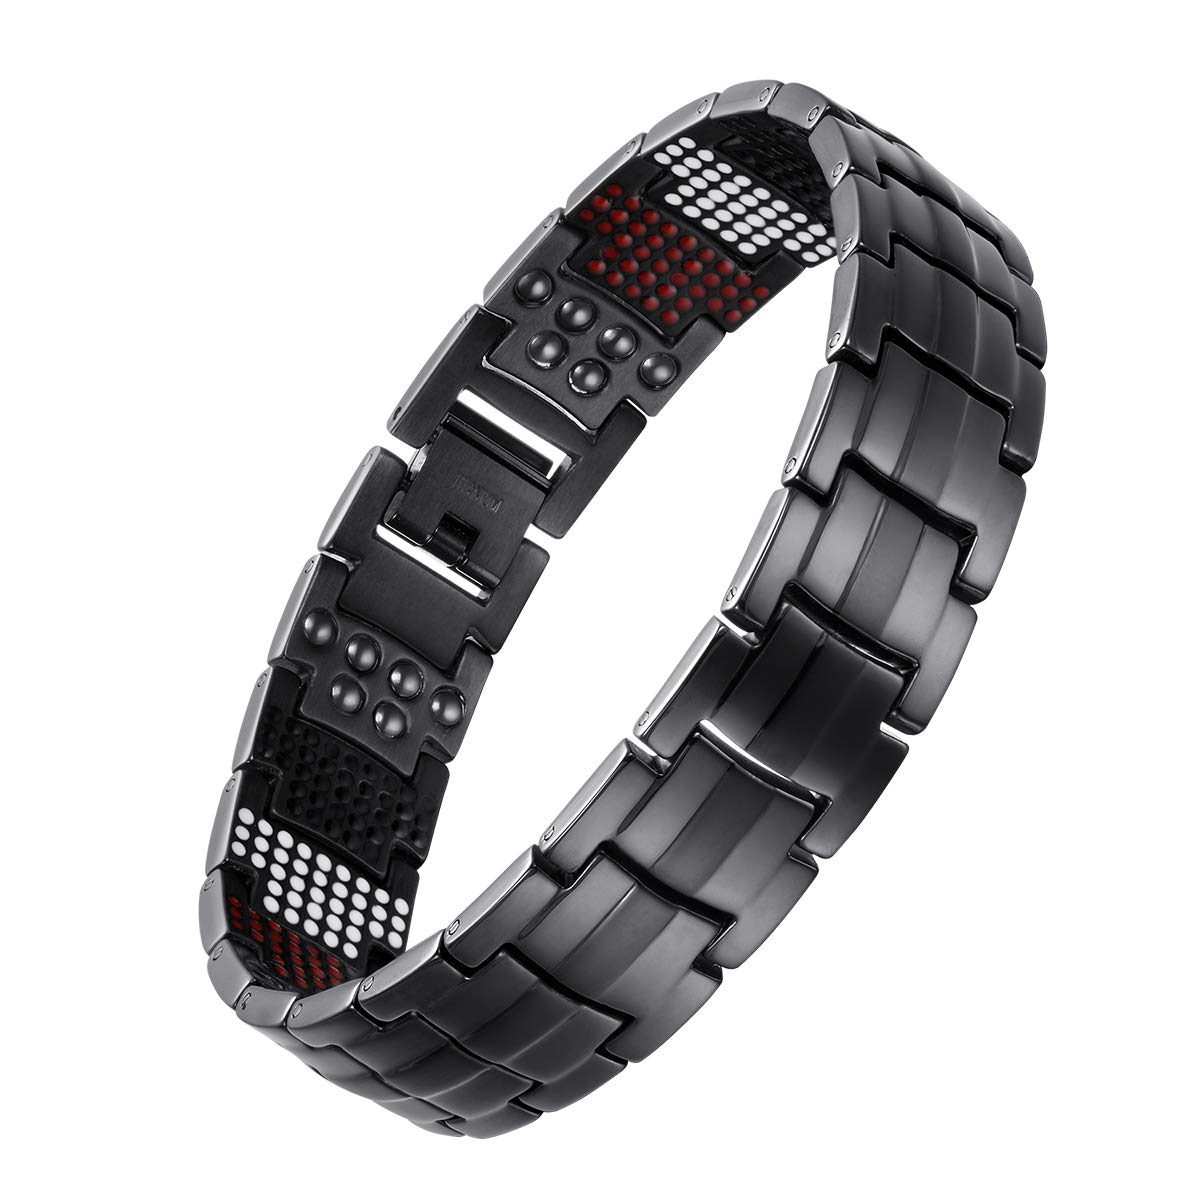 USWEL Titanium Bracelet for Men Black PVD Coating 591pcs Minerals Magnetic Bracelet for Men Pain Relieving Bracelet for Arthritis and Carpal Tunnel with Link Removal Tool and Gift Box Packed by USWEL